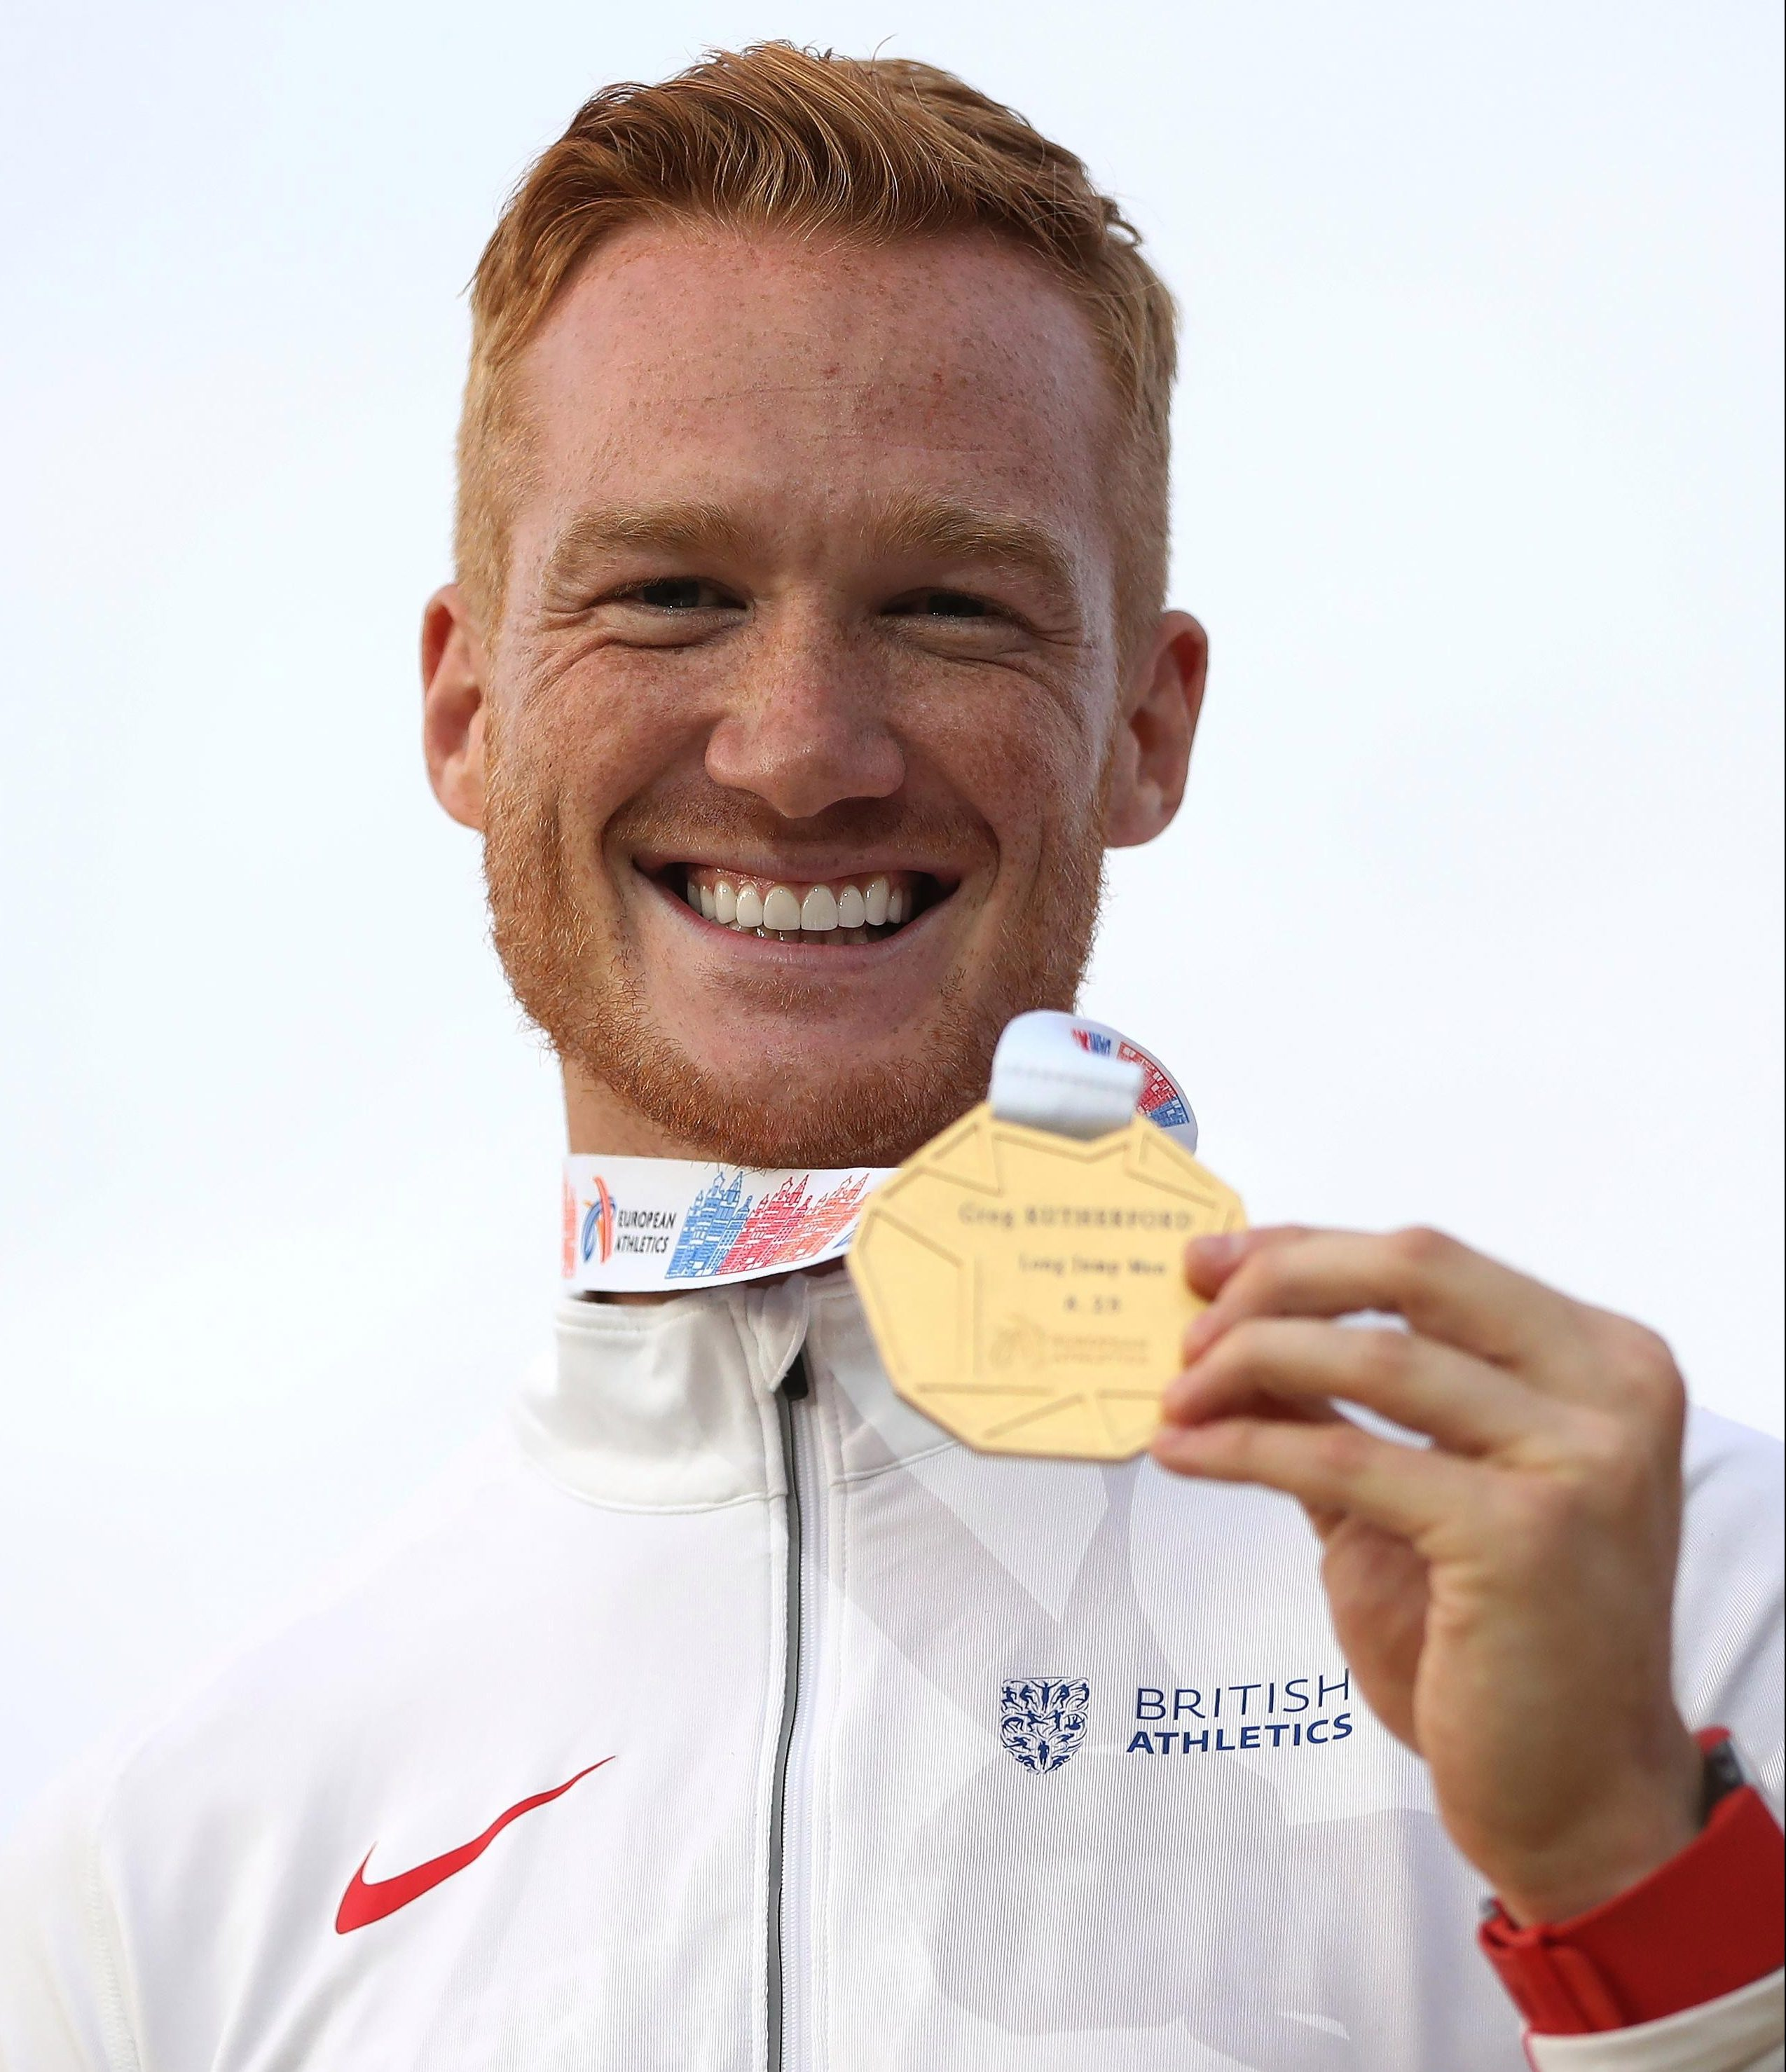 Greg Rutherford has given British athletics fans plenty to smile about